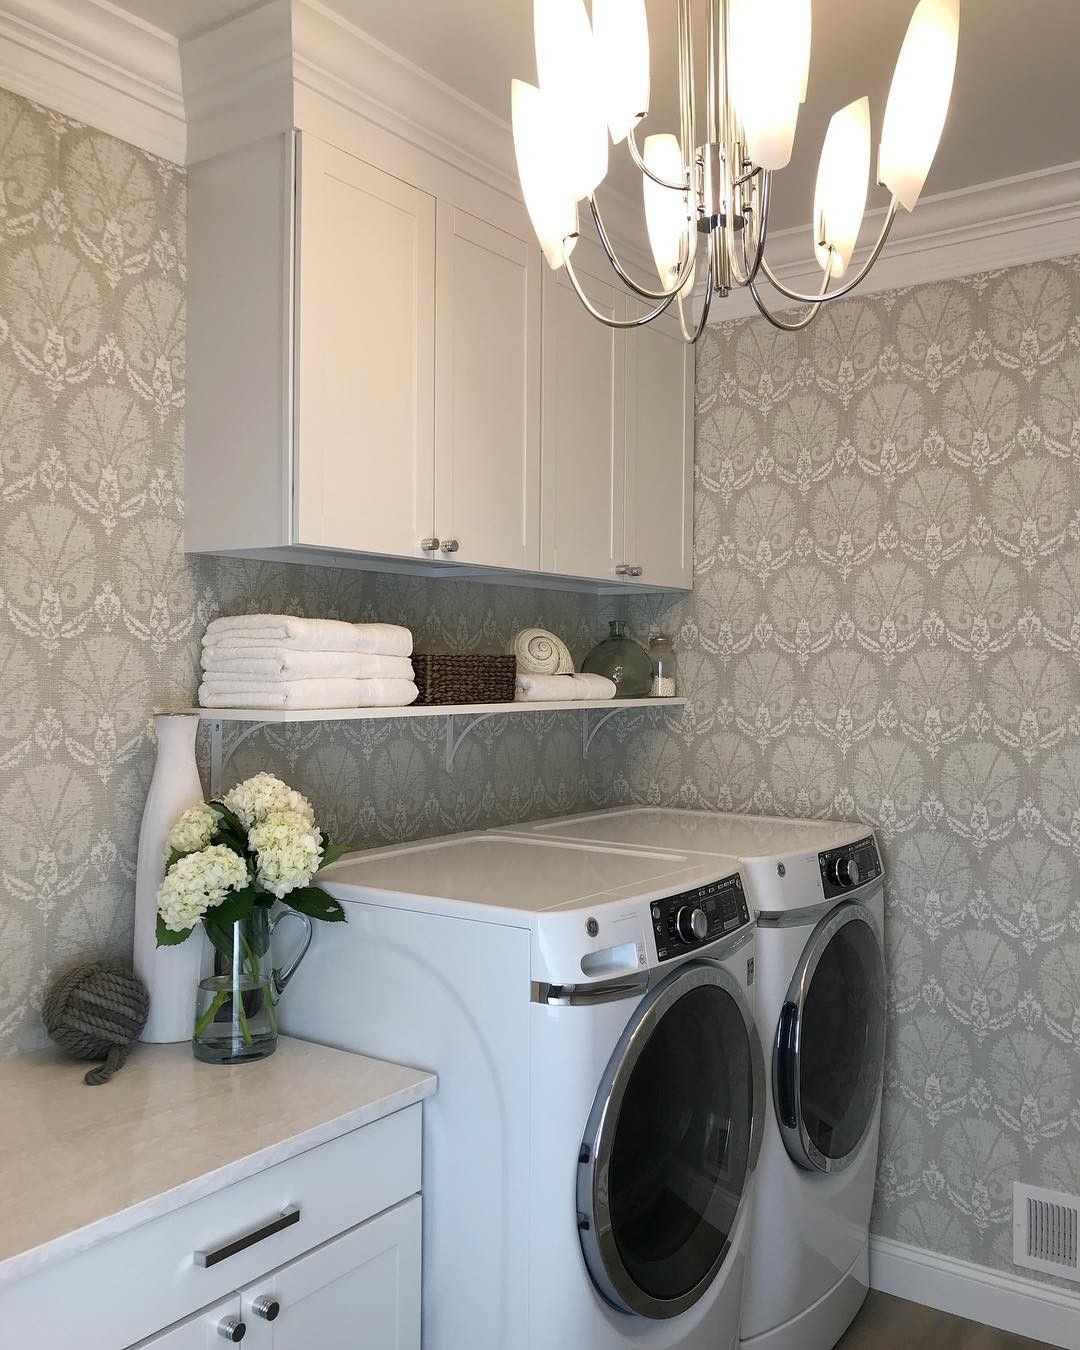 Pin by Land of Pillows on laundry room ideeas | Laundry ...